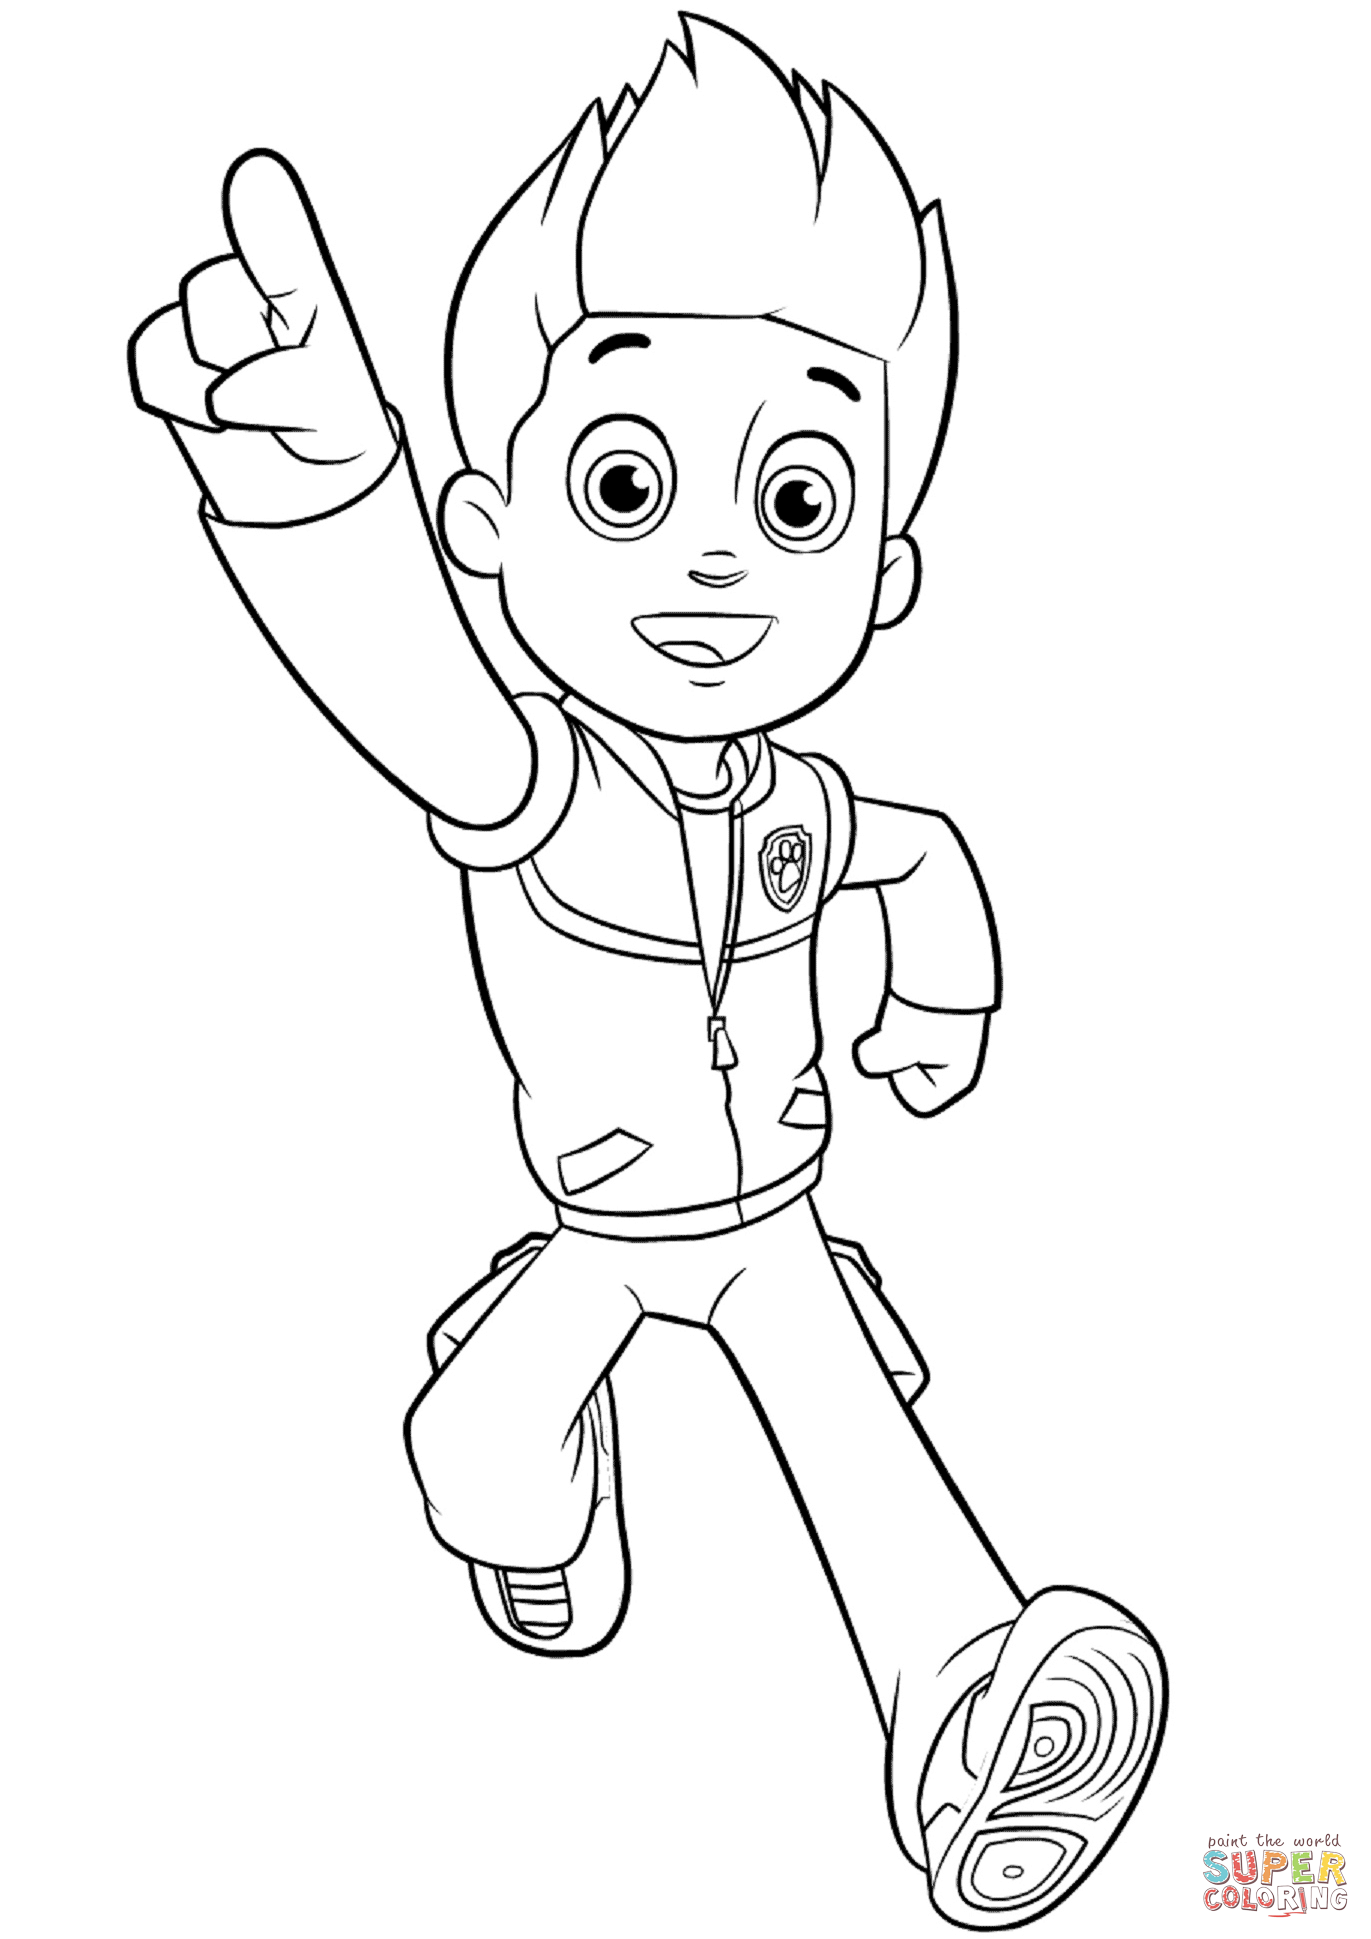 paw patrol coloring pages ryder ryder printable coloring page for kids and adults ryder patrol paw pages coloring